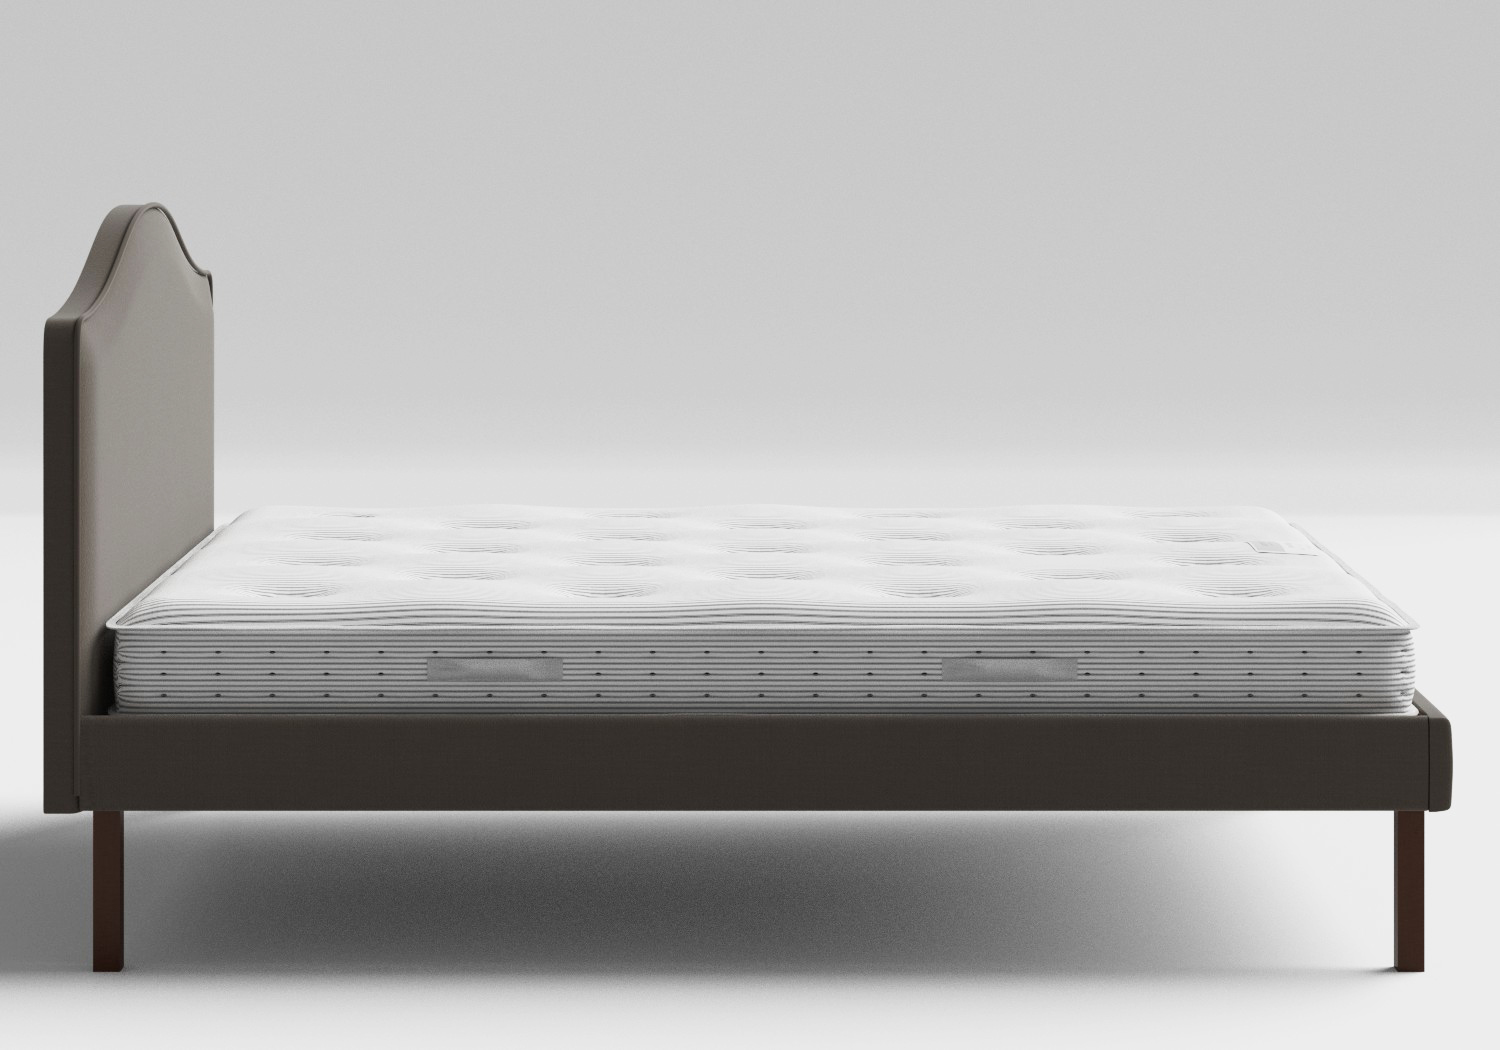 Yoshida Upholstered Bed with Grey fabric with piping shown with Juno 1 mattress